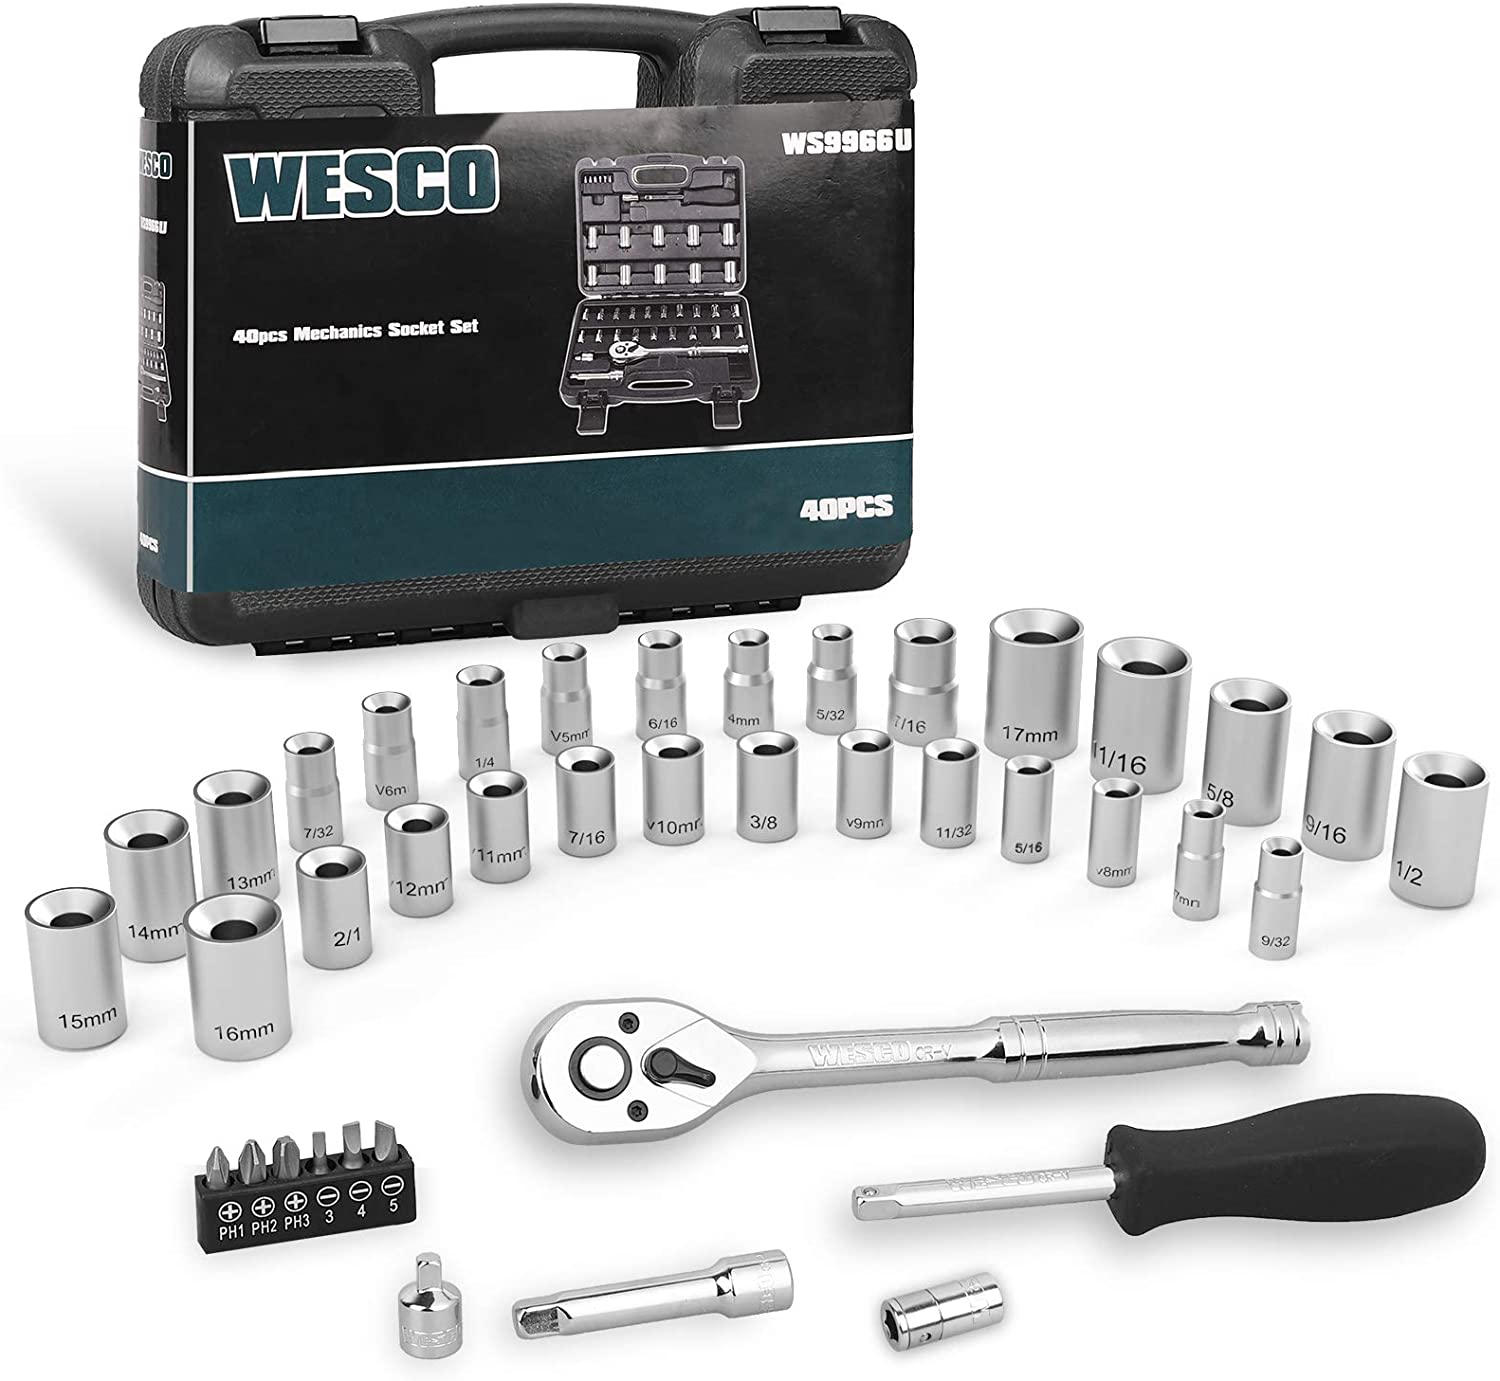 Wesco Socket Set 40 Piece 1 4 And 3 8 Drive Socket Wrench Set With Quick Release Ratchet Spinner Handle Adaptor Screwdriver Set Extension Metric And Sae For Auto Repairing Household Ws9966u Home Improvement